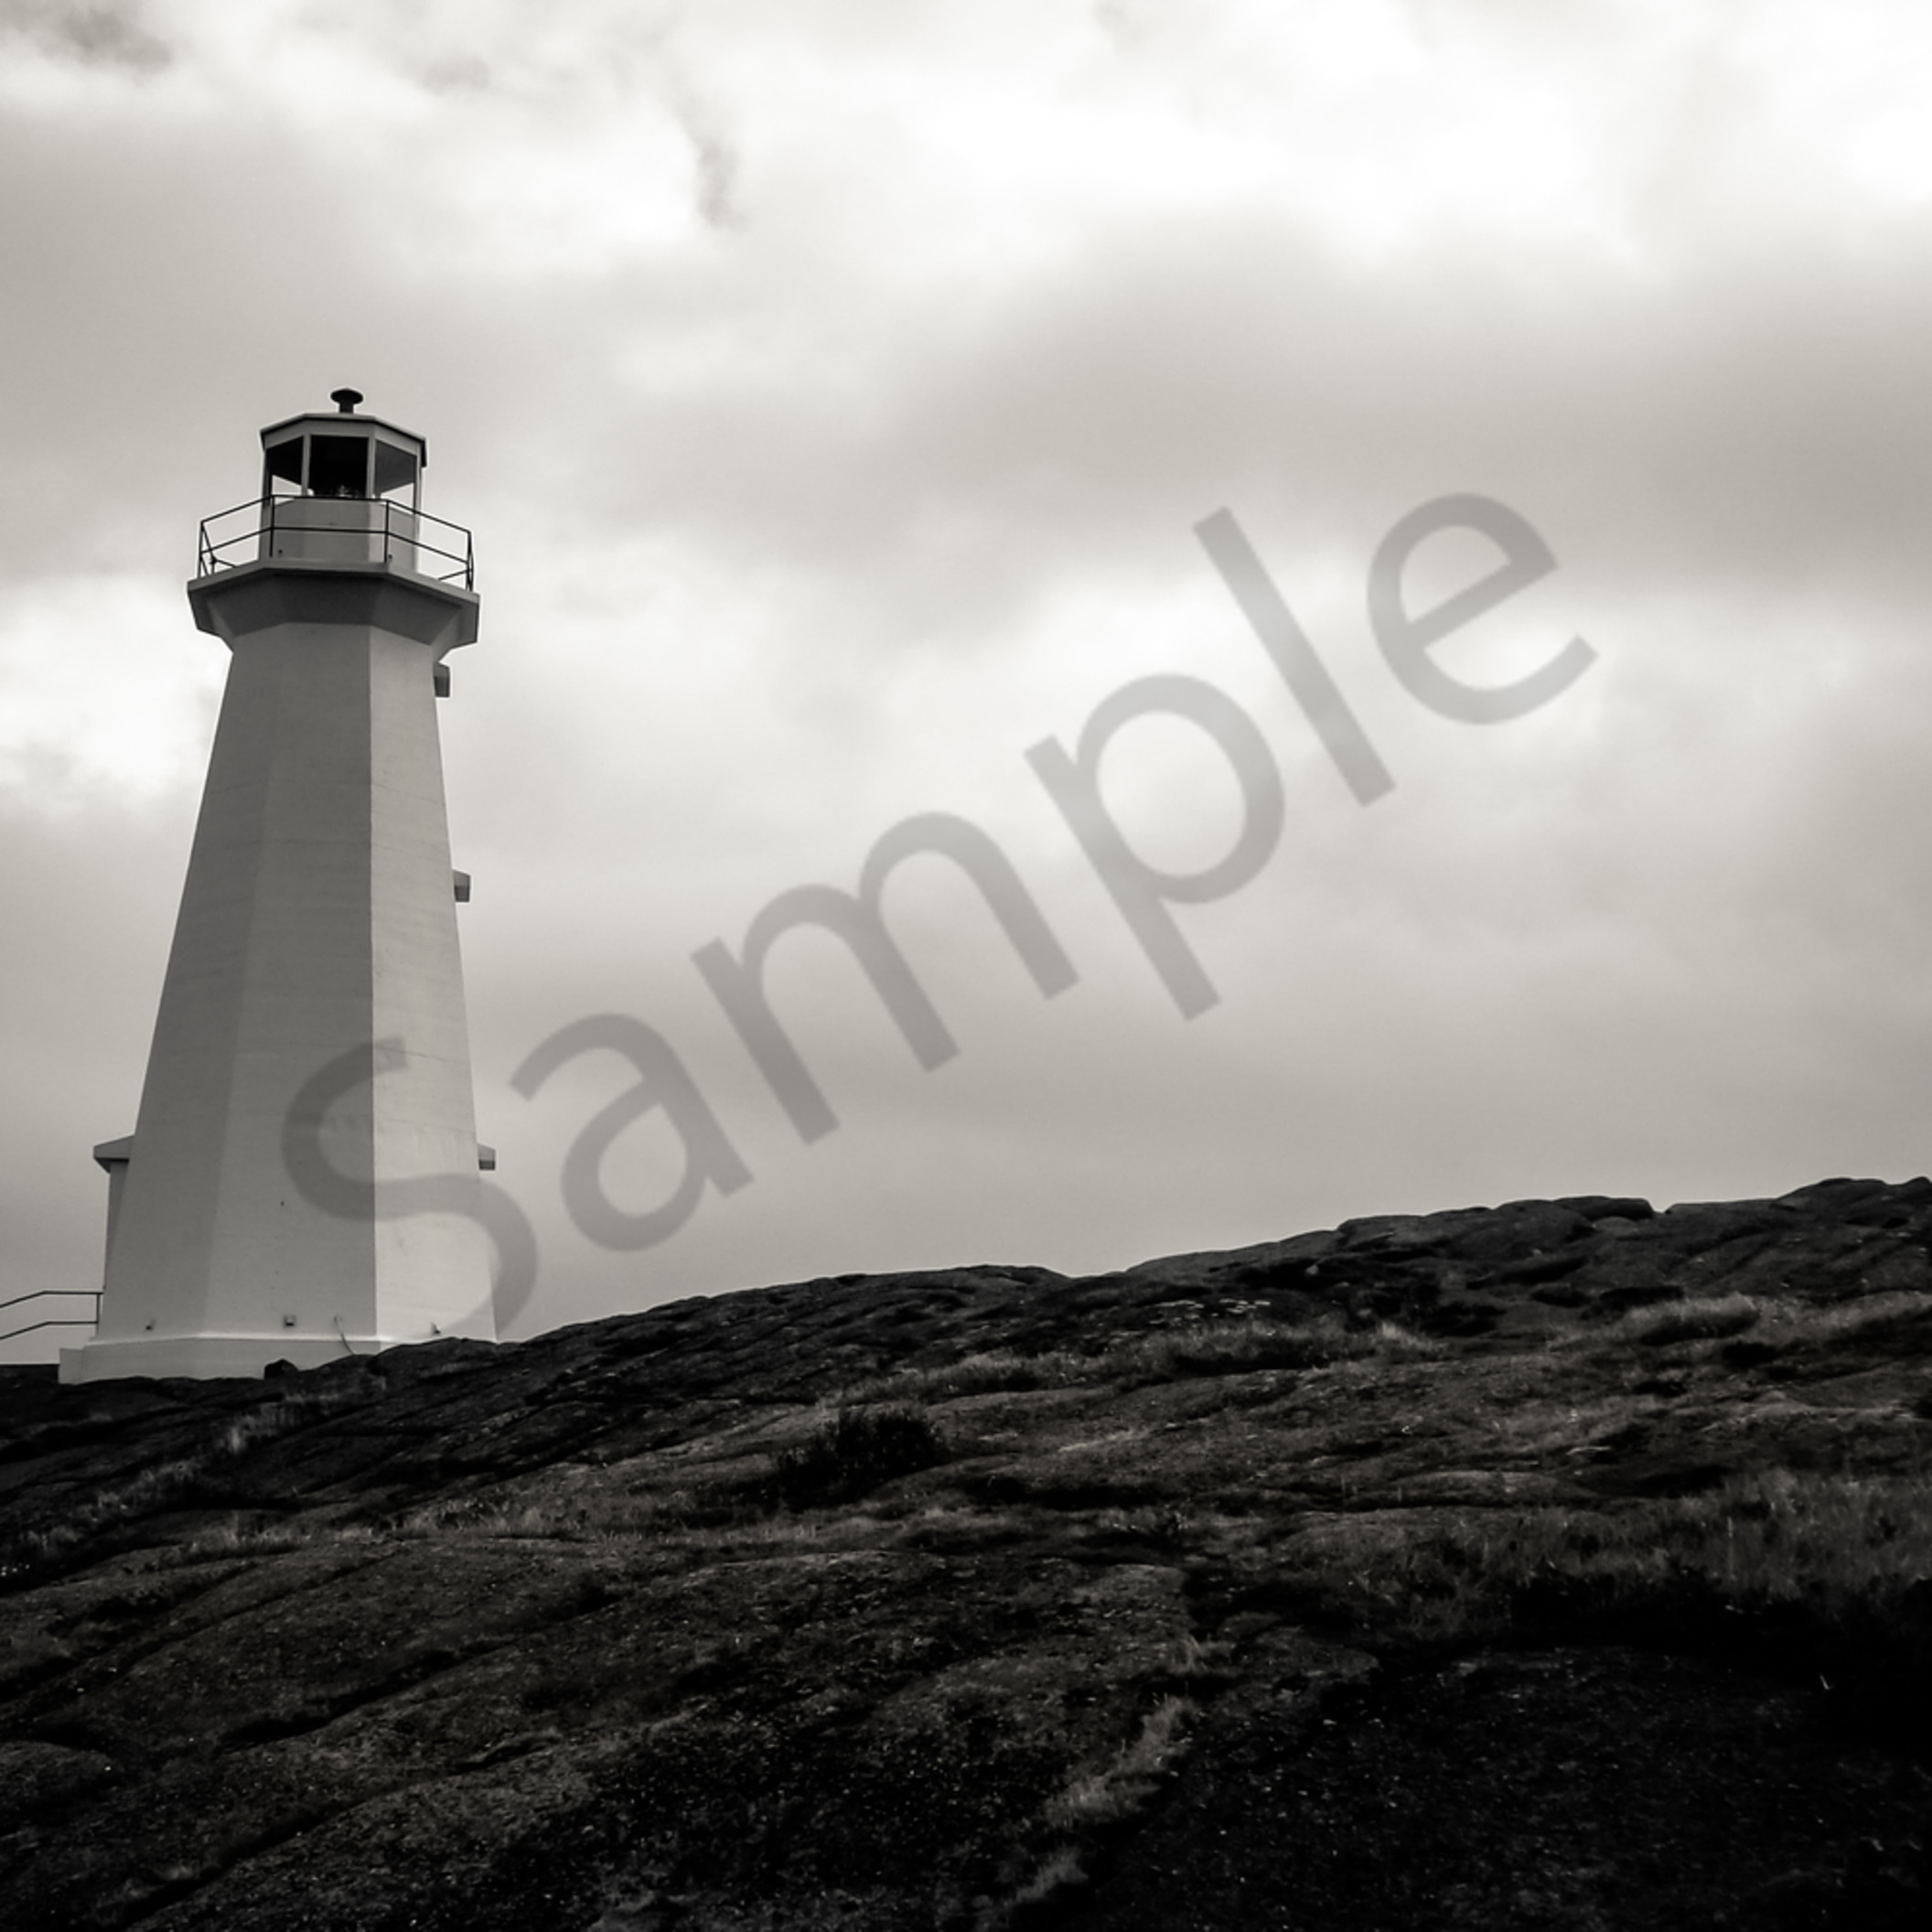 Lighthouse at cape spear oanny3